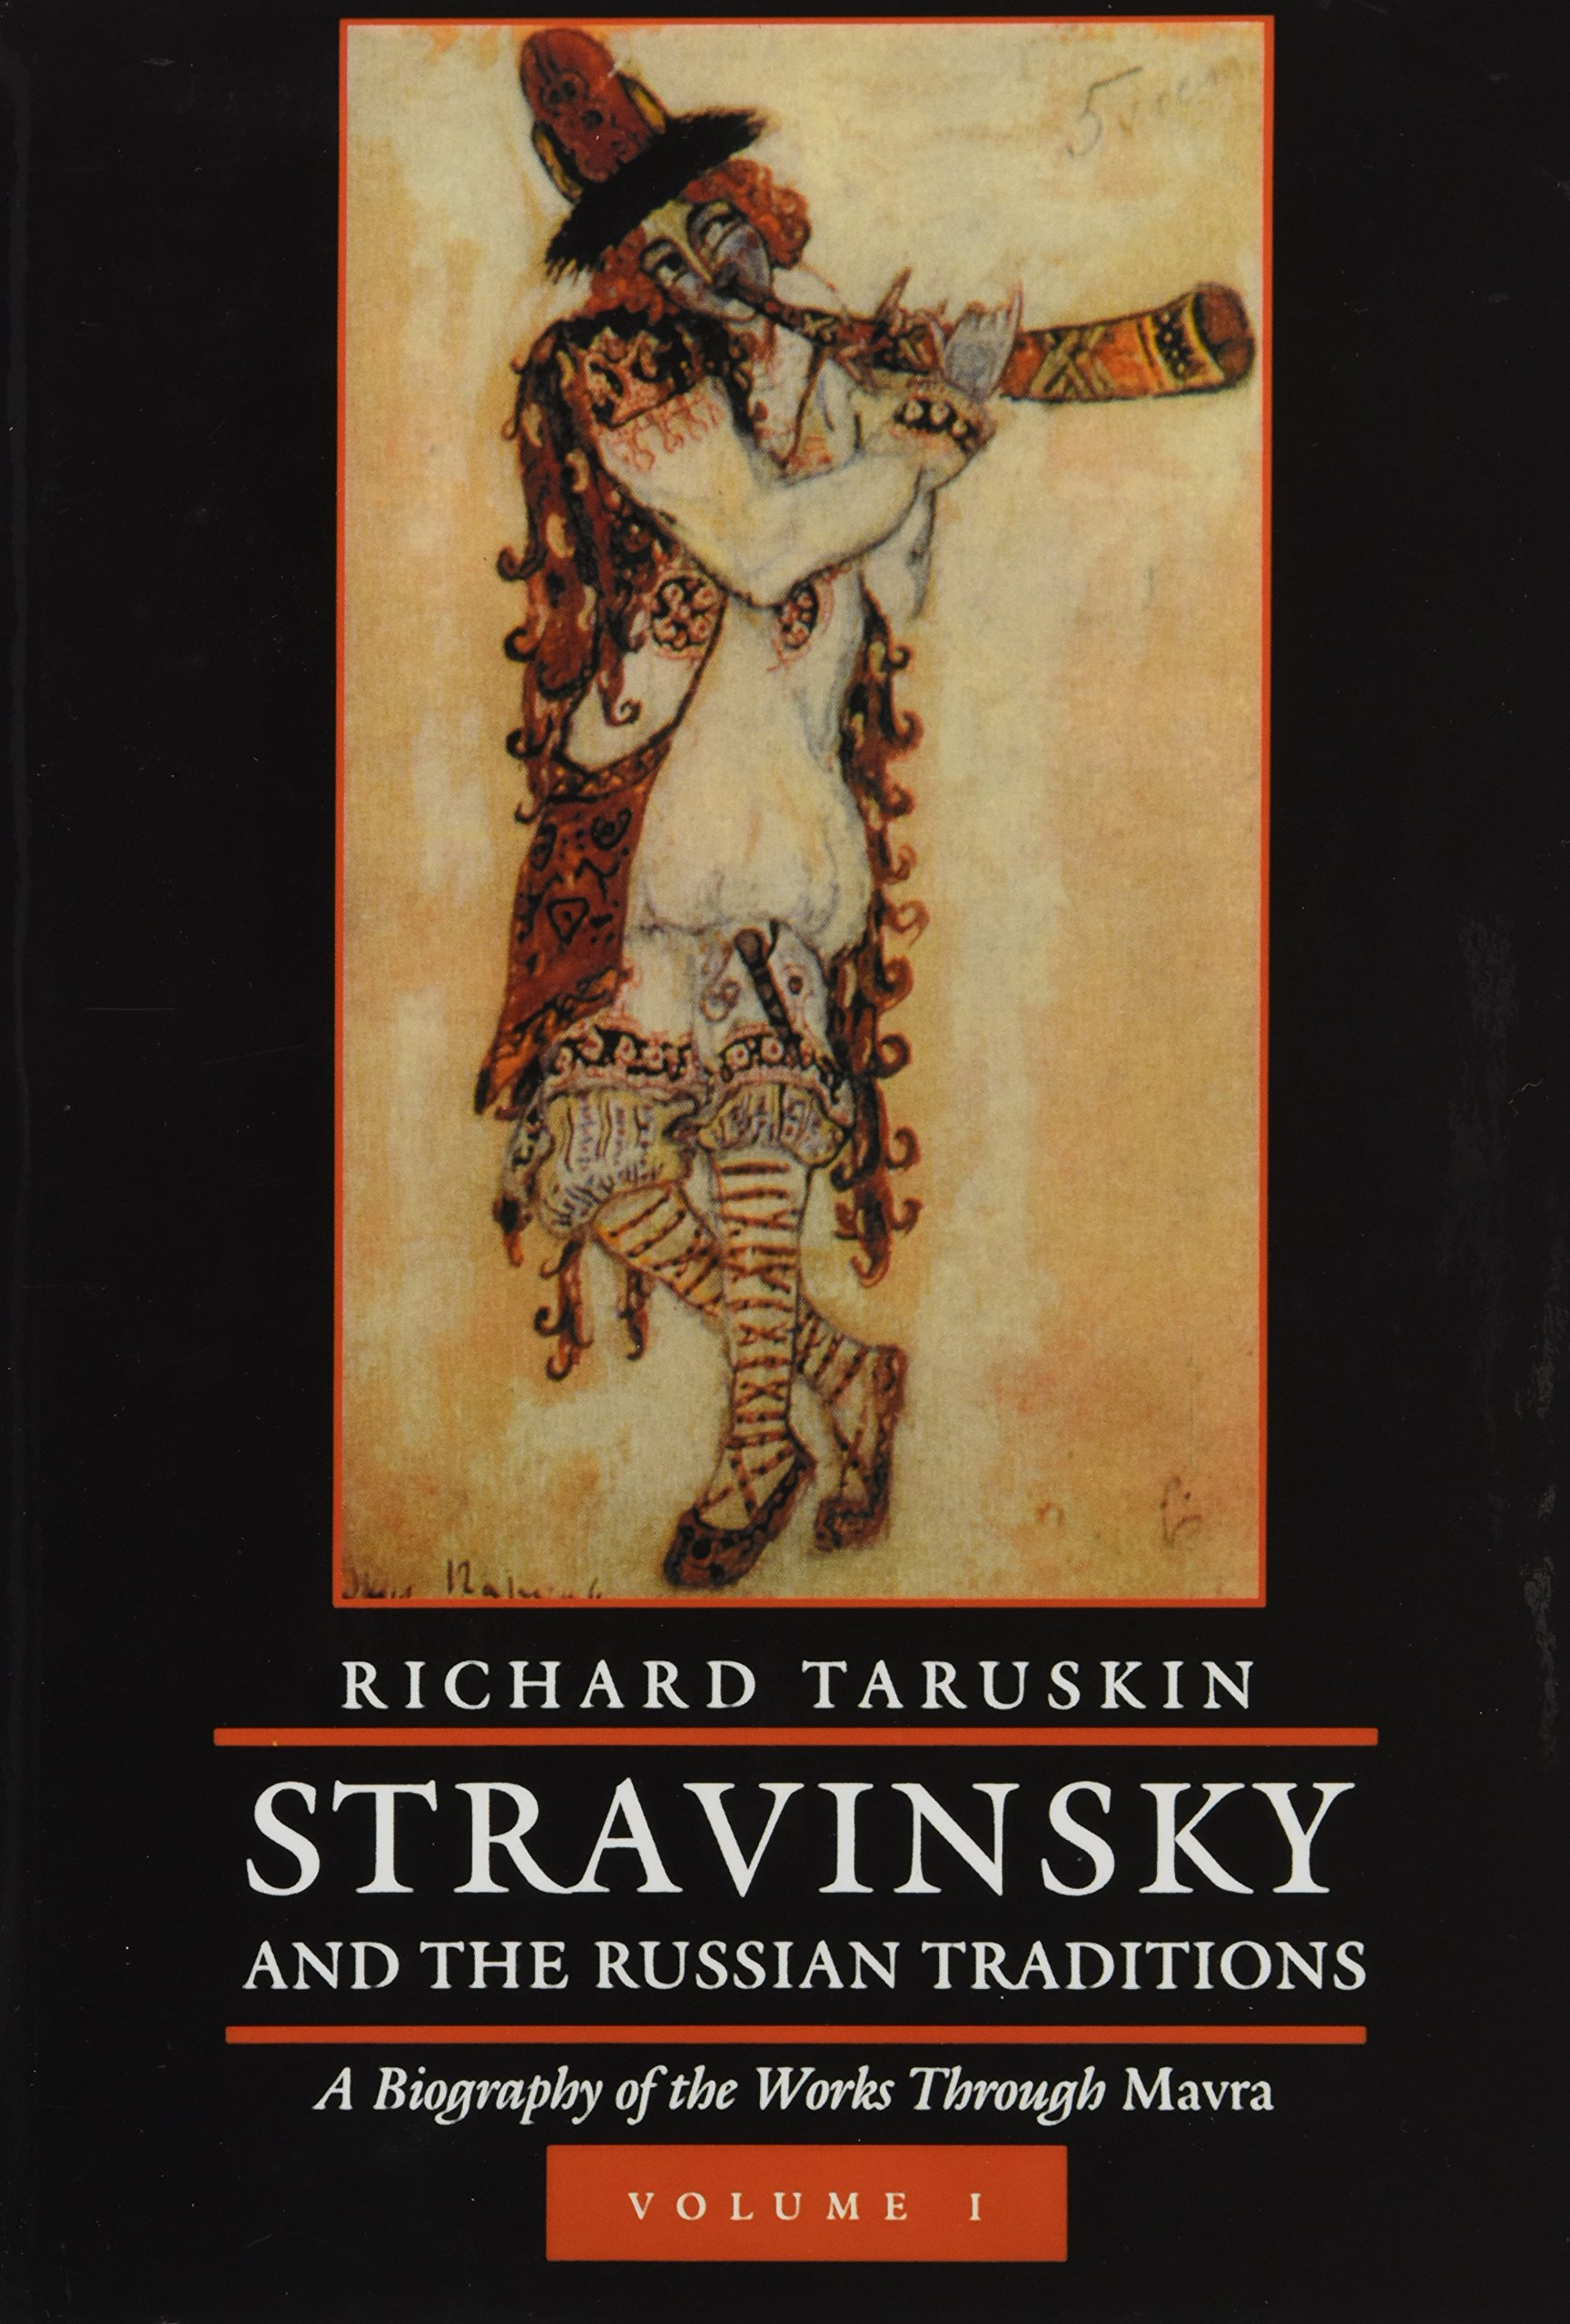 Stravinsky and the Russian Traditions, Volume One: A Biography of the Works through Mavra